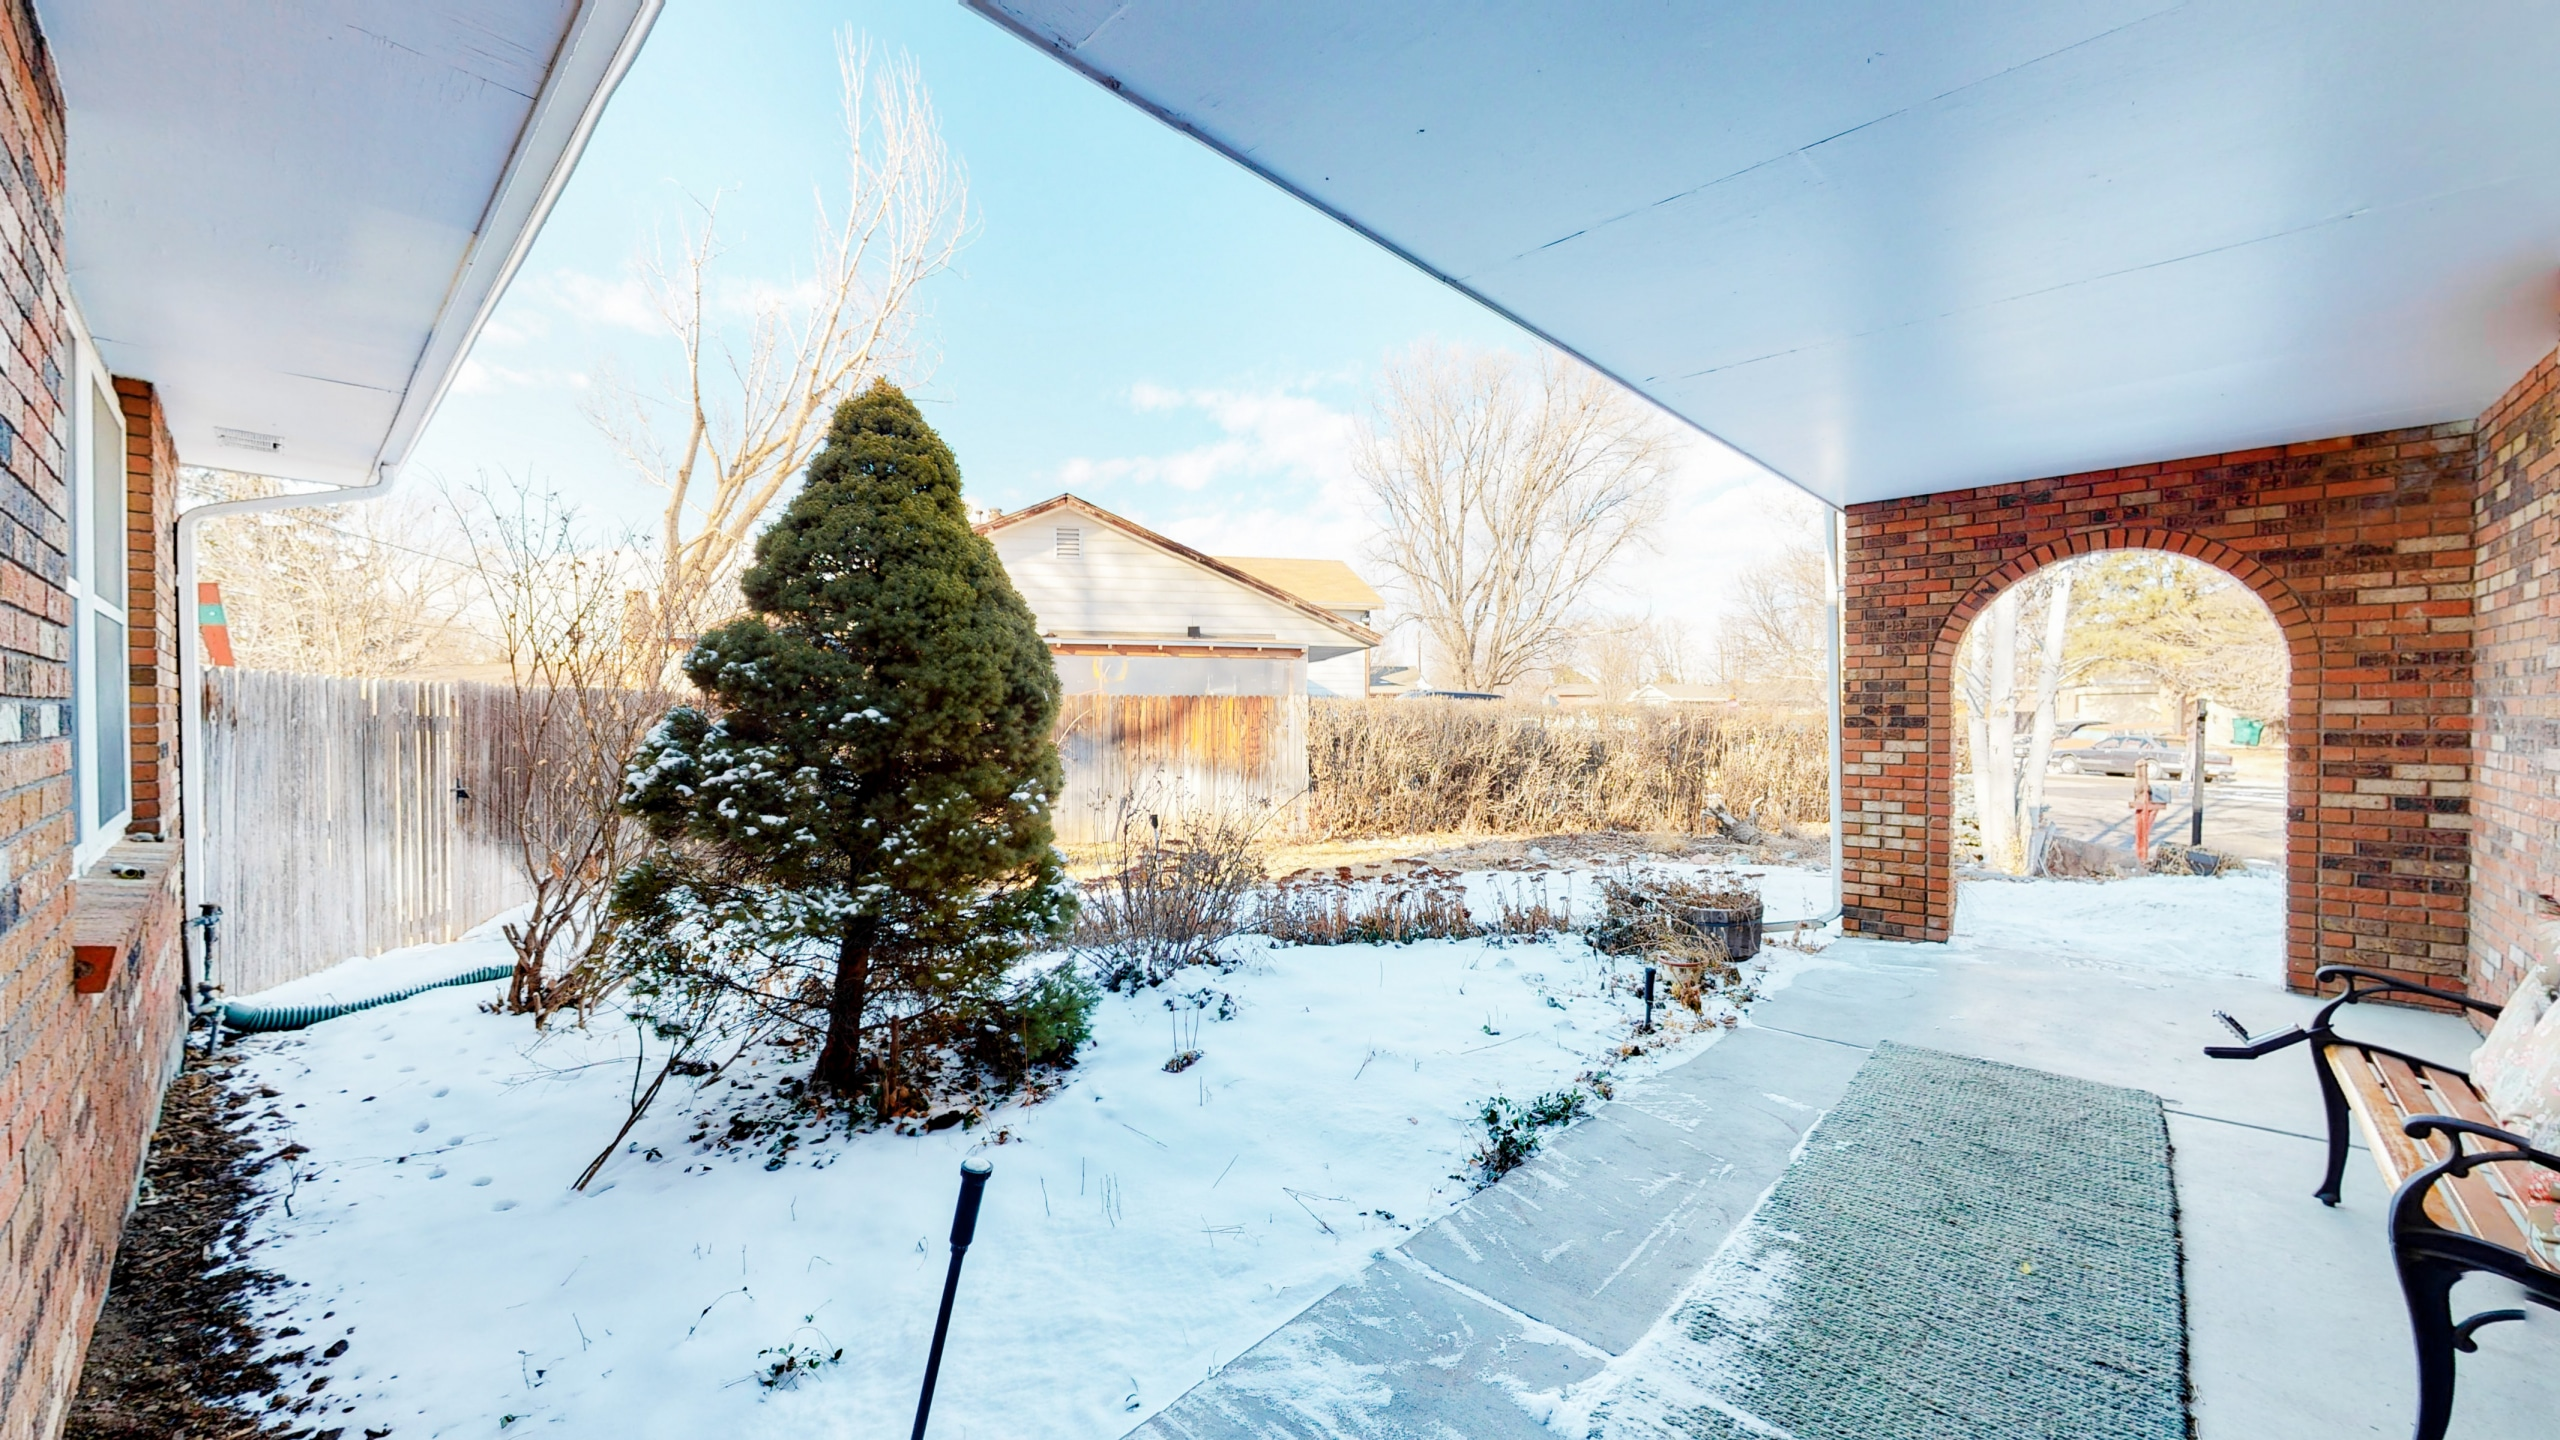 View of front covered patio, red brick home